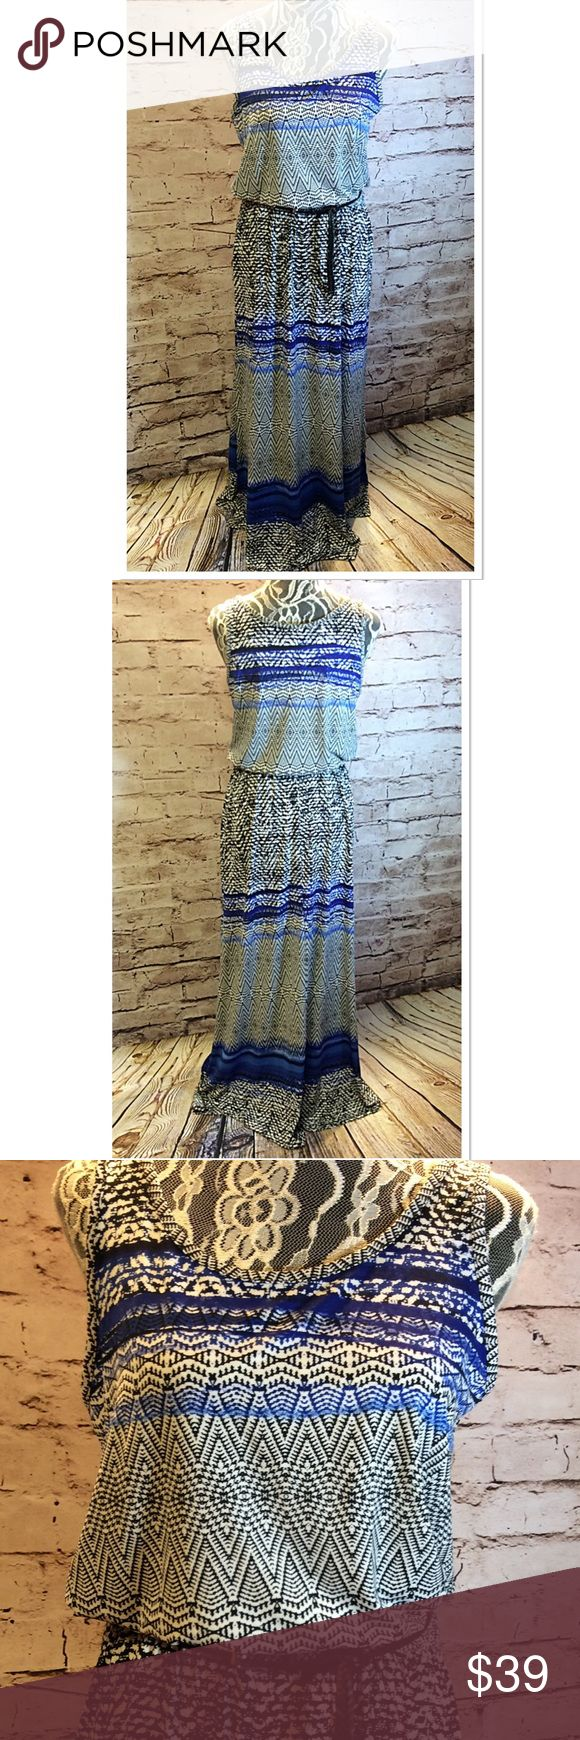 GORGEOUS AZTEC MAXI DRESS BY FEVER Beautiful maxi dress with contrast black woven waist belt. NWOT blue/white/black. 2 side slits that strike just at the knee Fever Dresses Maxi